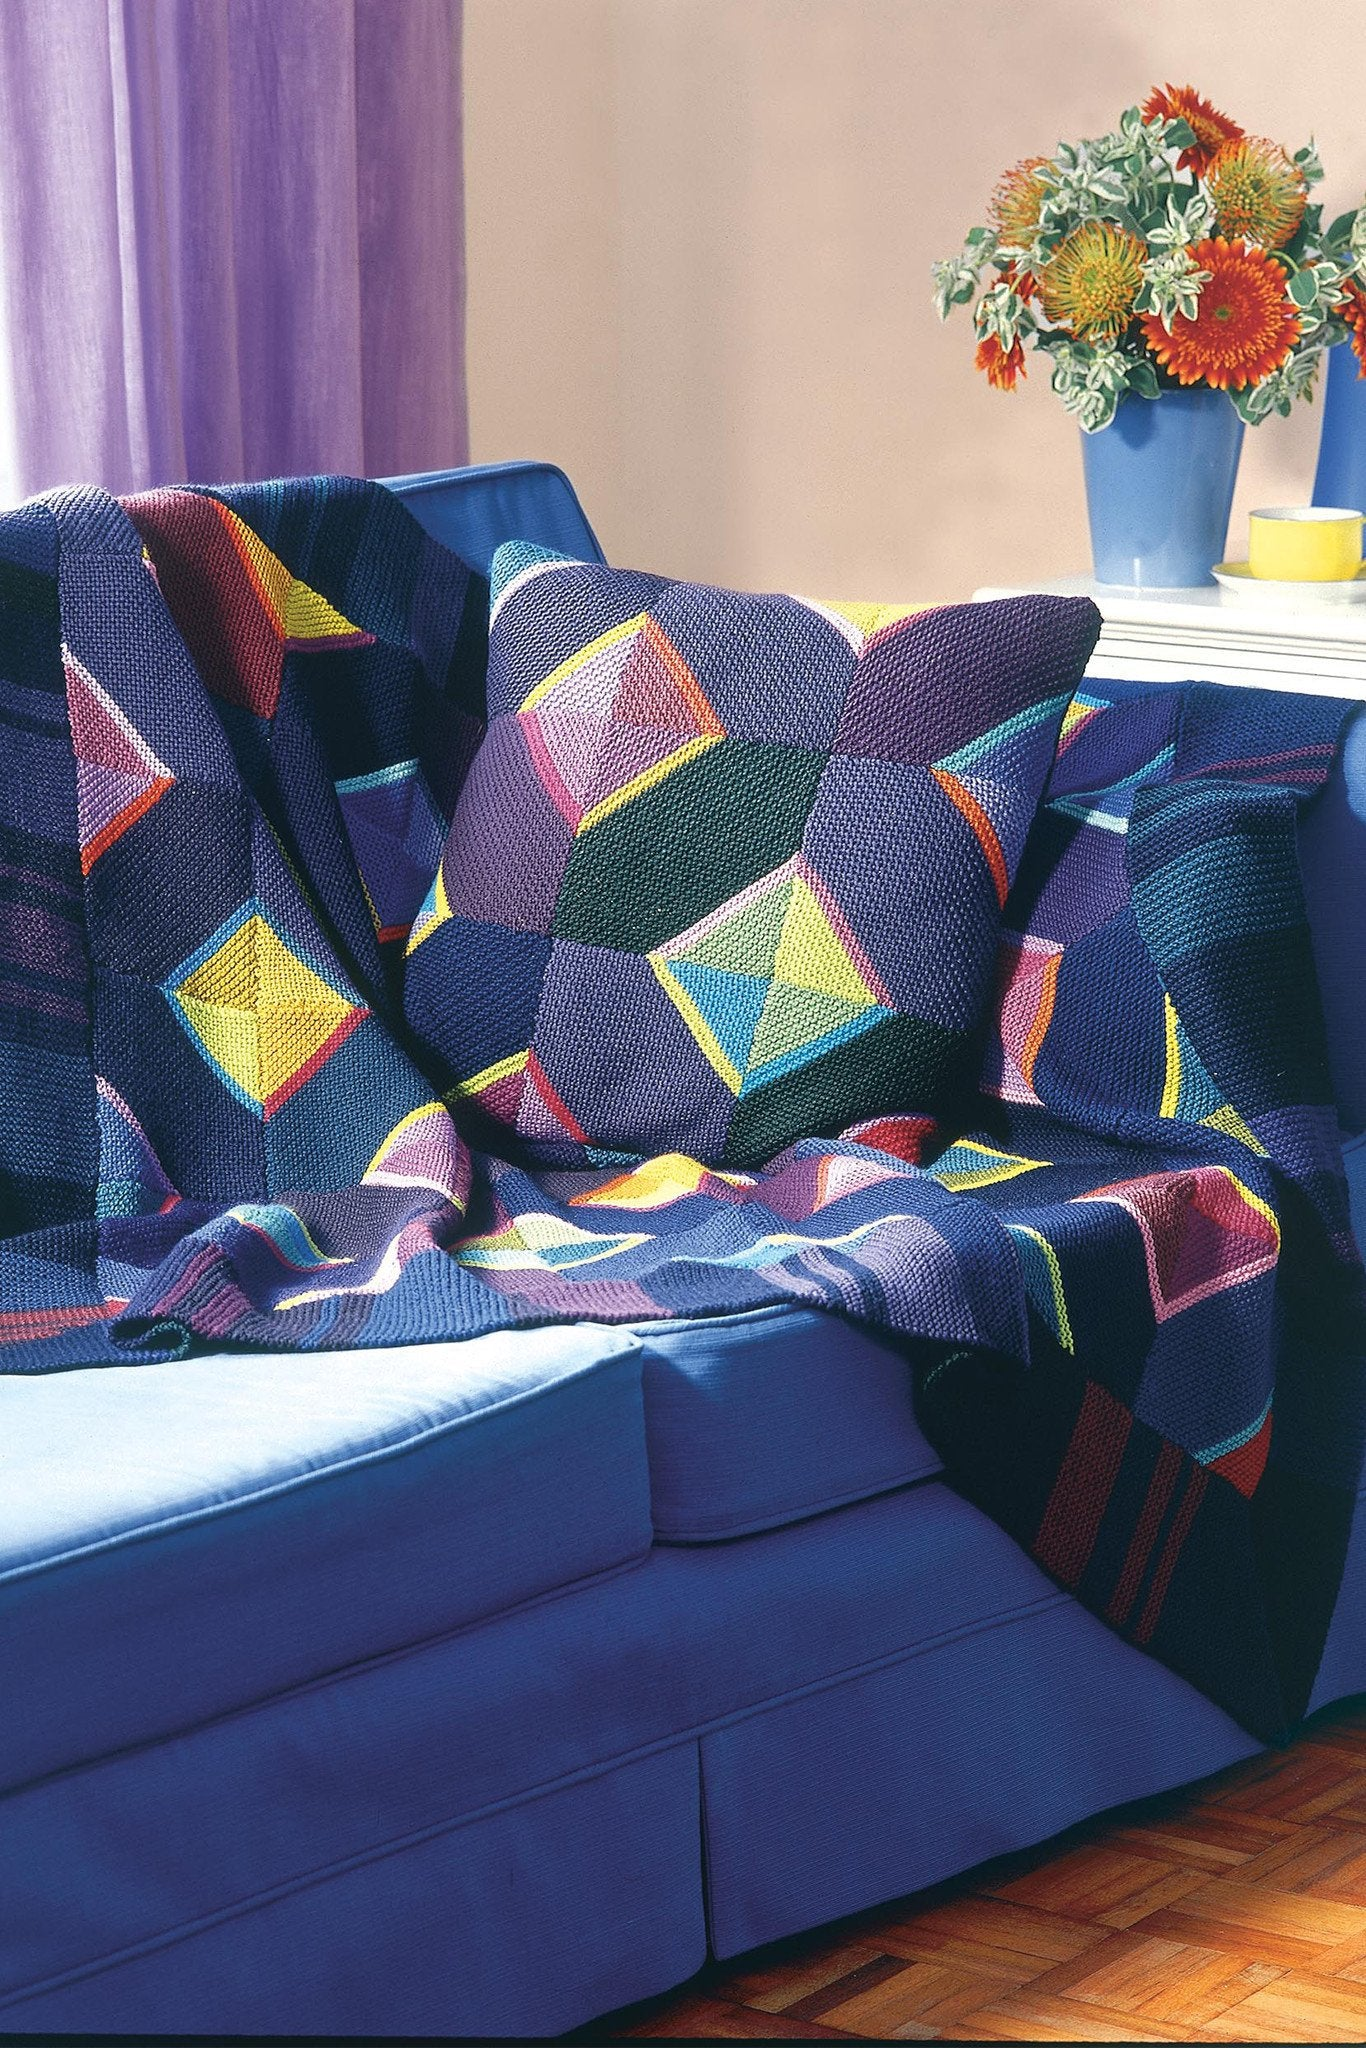 Knitted Patchwork Blanket Pattern : Patchwork Blanket And Cushion Geometric Knitting Patterns   The Knitting Network